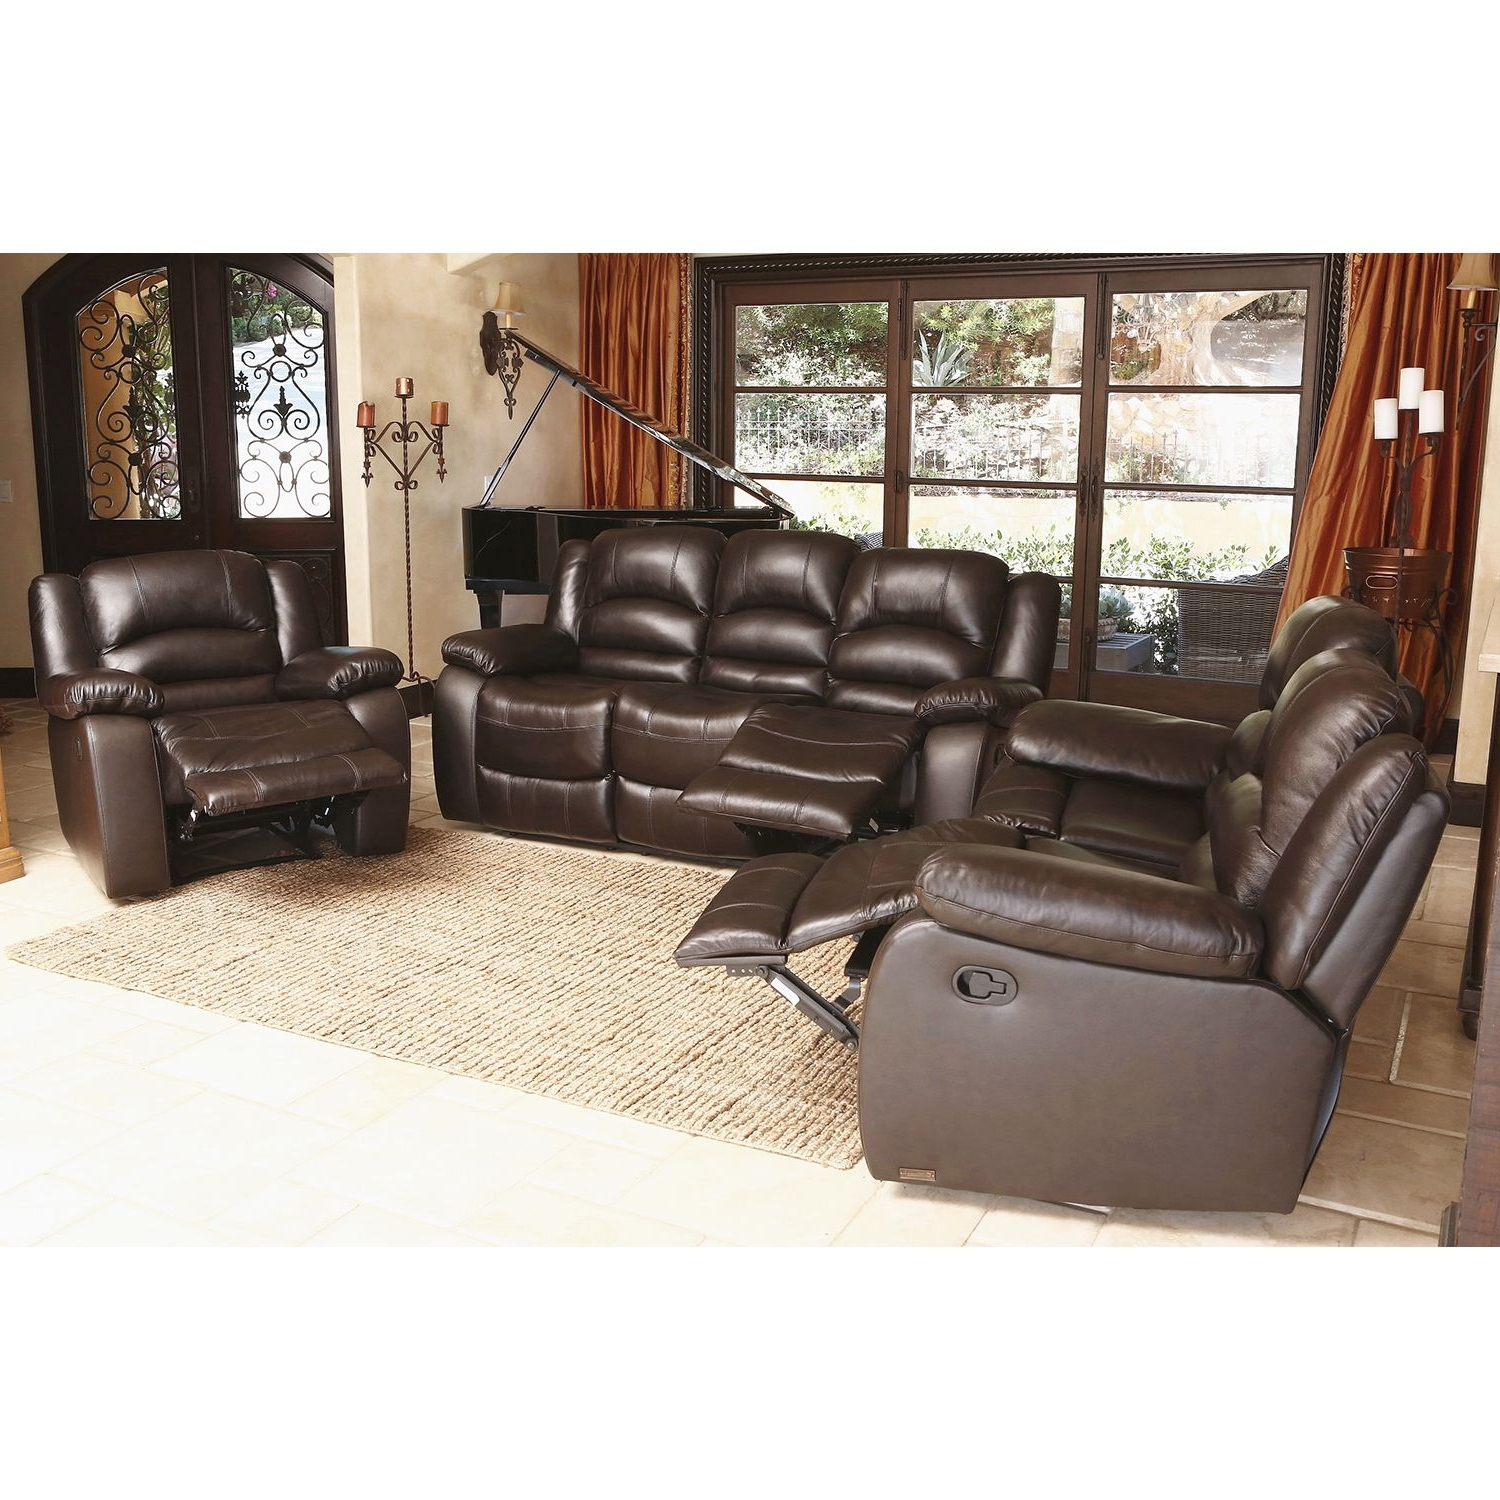 Sams Club Sectional Sofas Regarding Fashionable Genuine Leather Sectional Costco Living Room Furniture Top Grain (View 13 of 15)